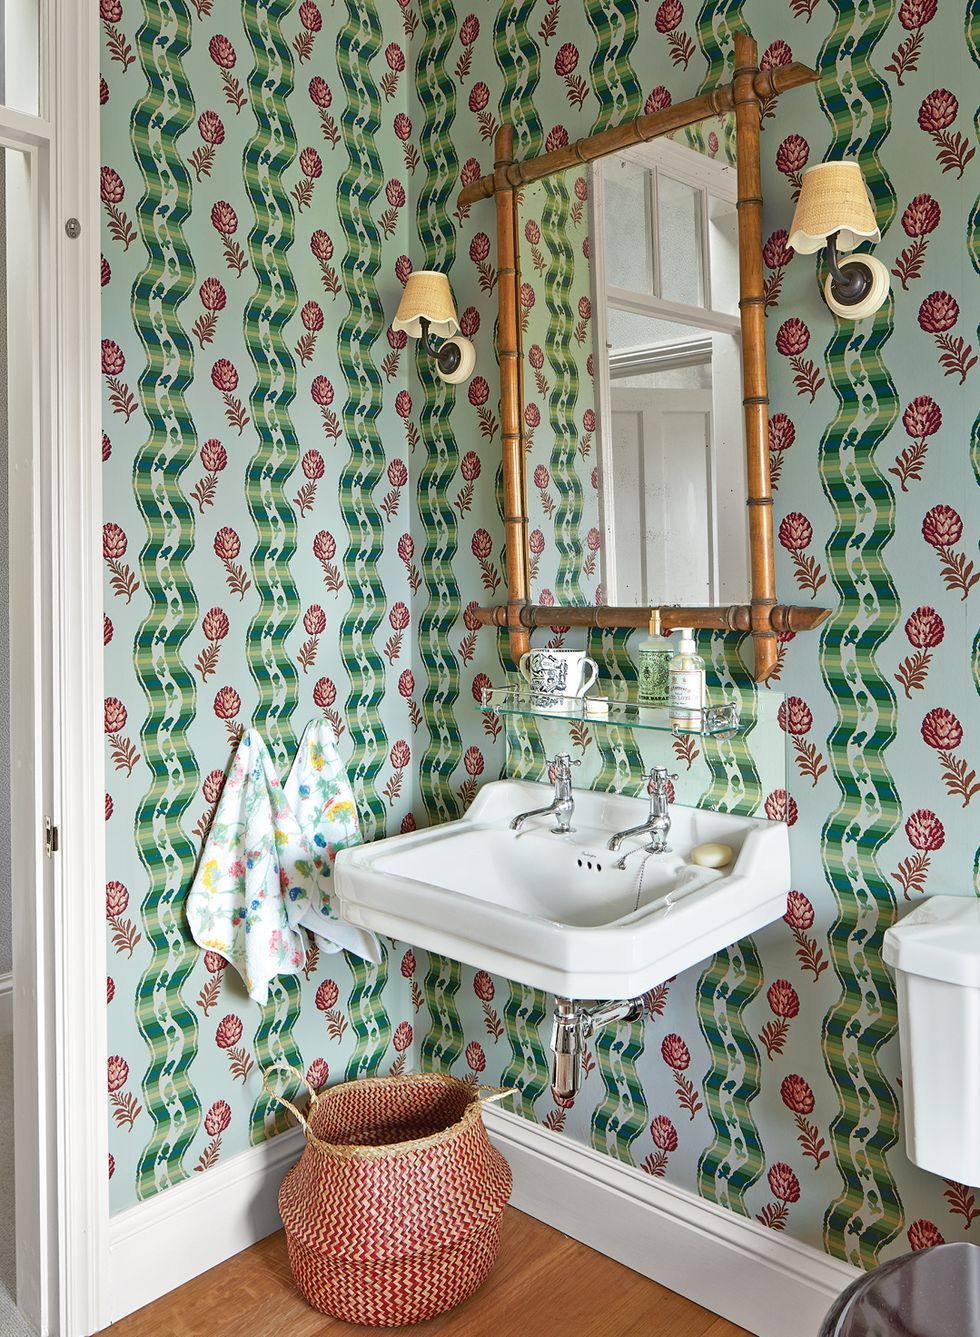 Rita Konig Powder Room Pierre Frey Wallpaper Bamboo Mirror